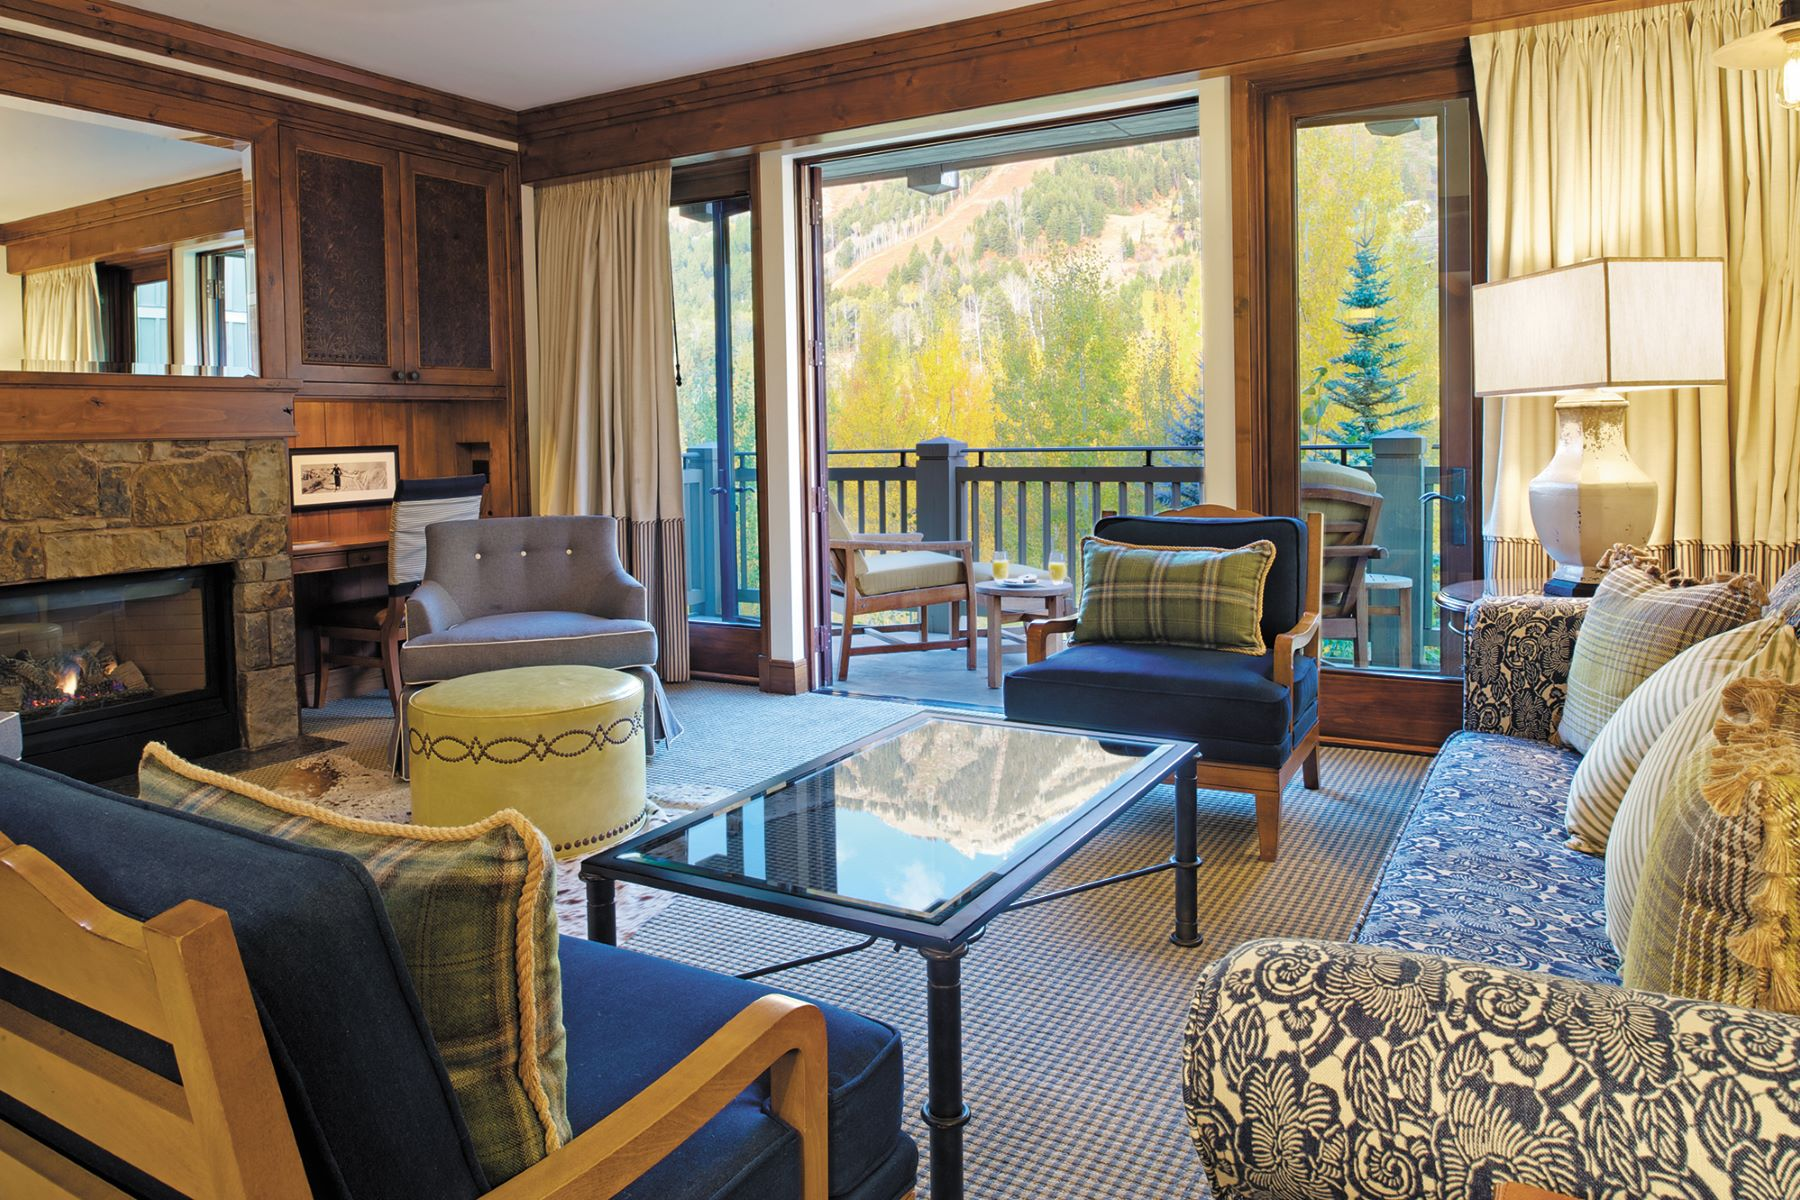 Appartement en copropriété pour l Vente à 3 Bedroom Four Seasons Residence Club 7680 Granite Loop Road, Unit 554 Four Seasons (WY) Teton Village, Wyoming, 83025 Jackson Hole, États-Unis